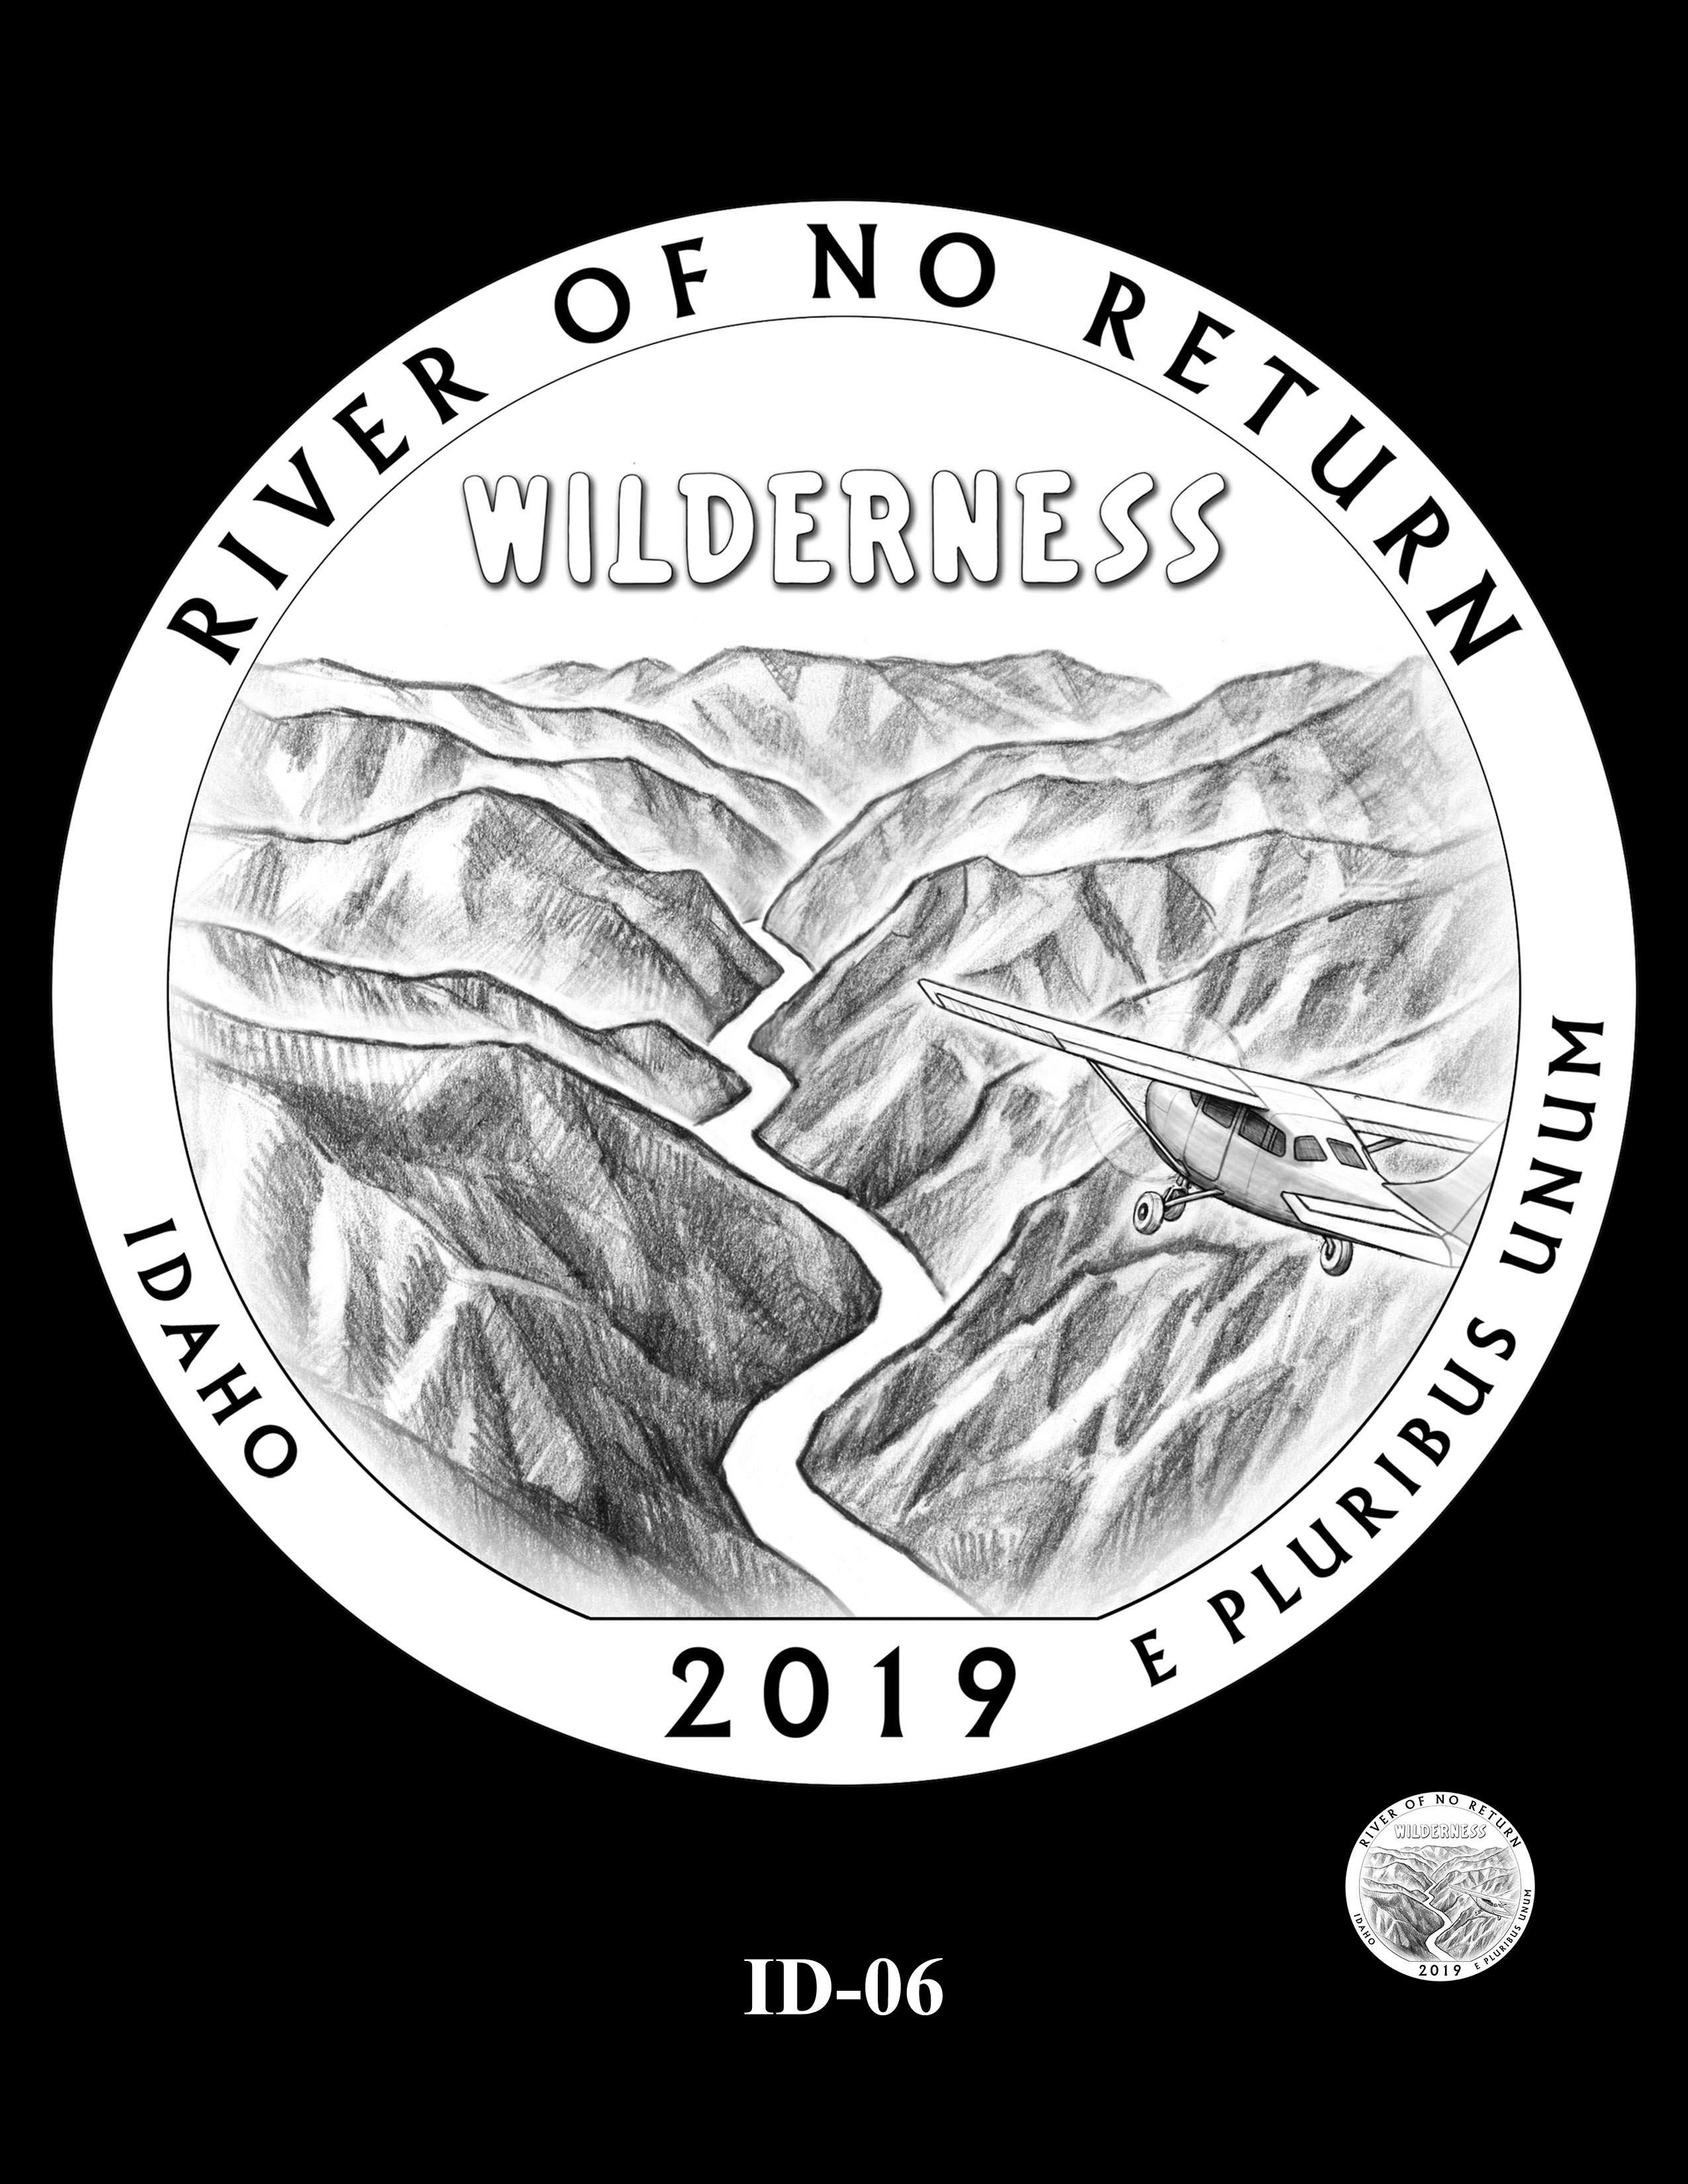 ID-06 -- 2019 America the Beautiful Quarters® Program